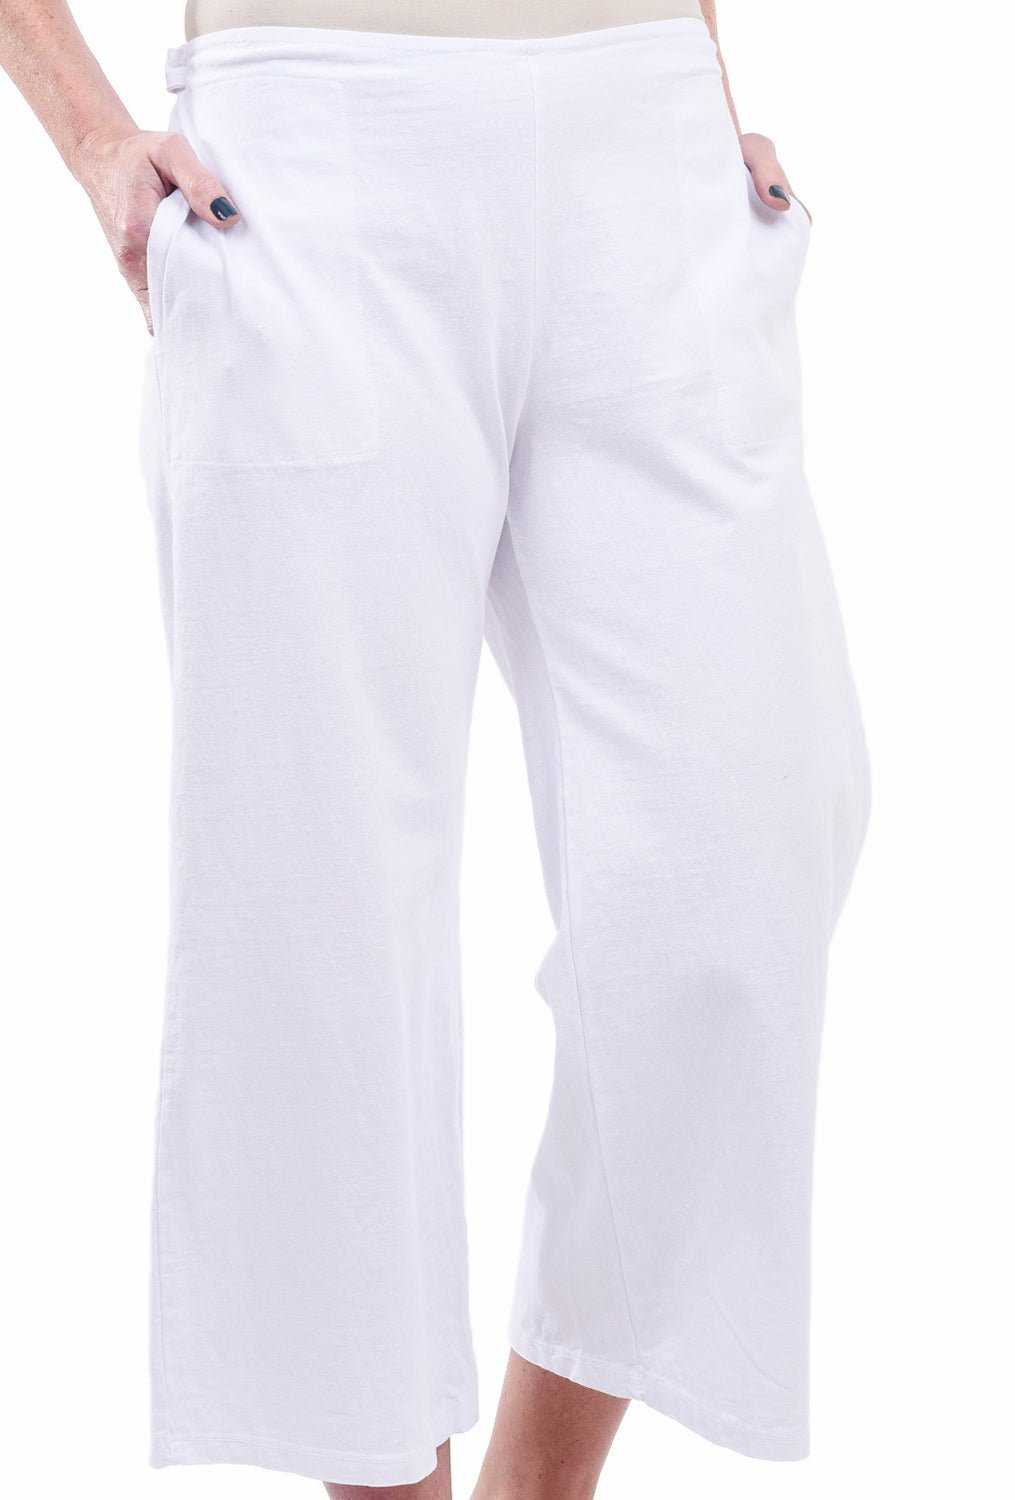 Fenini Flat Front Crop Pants, White